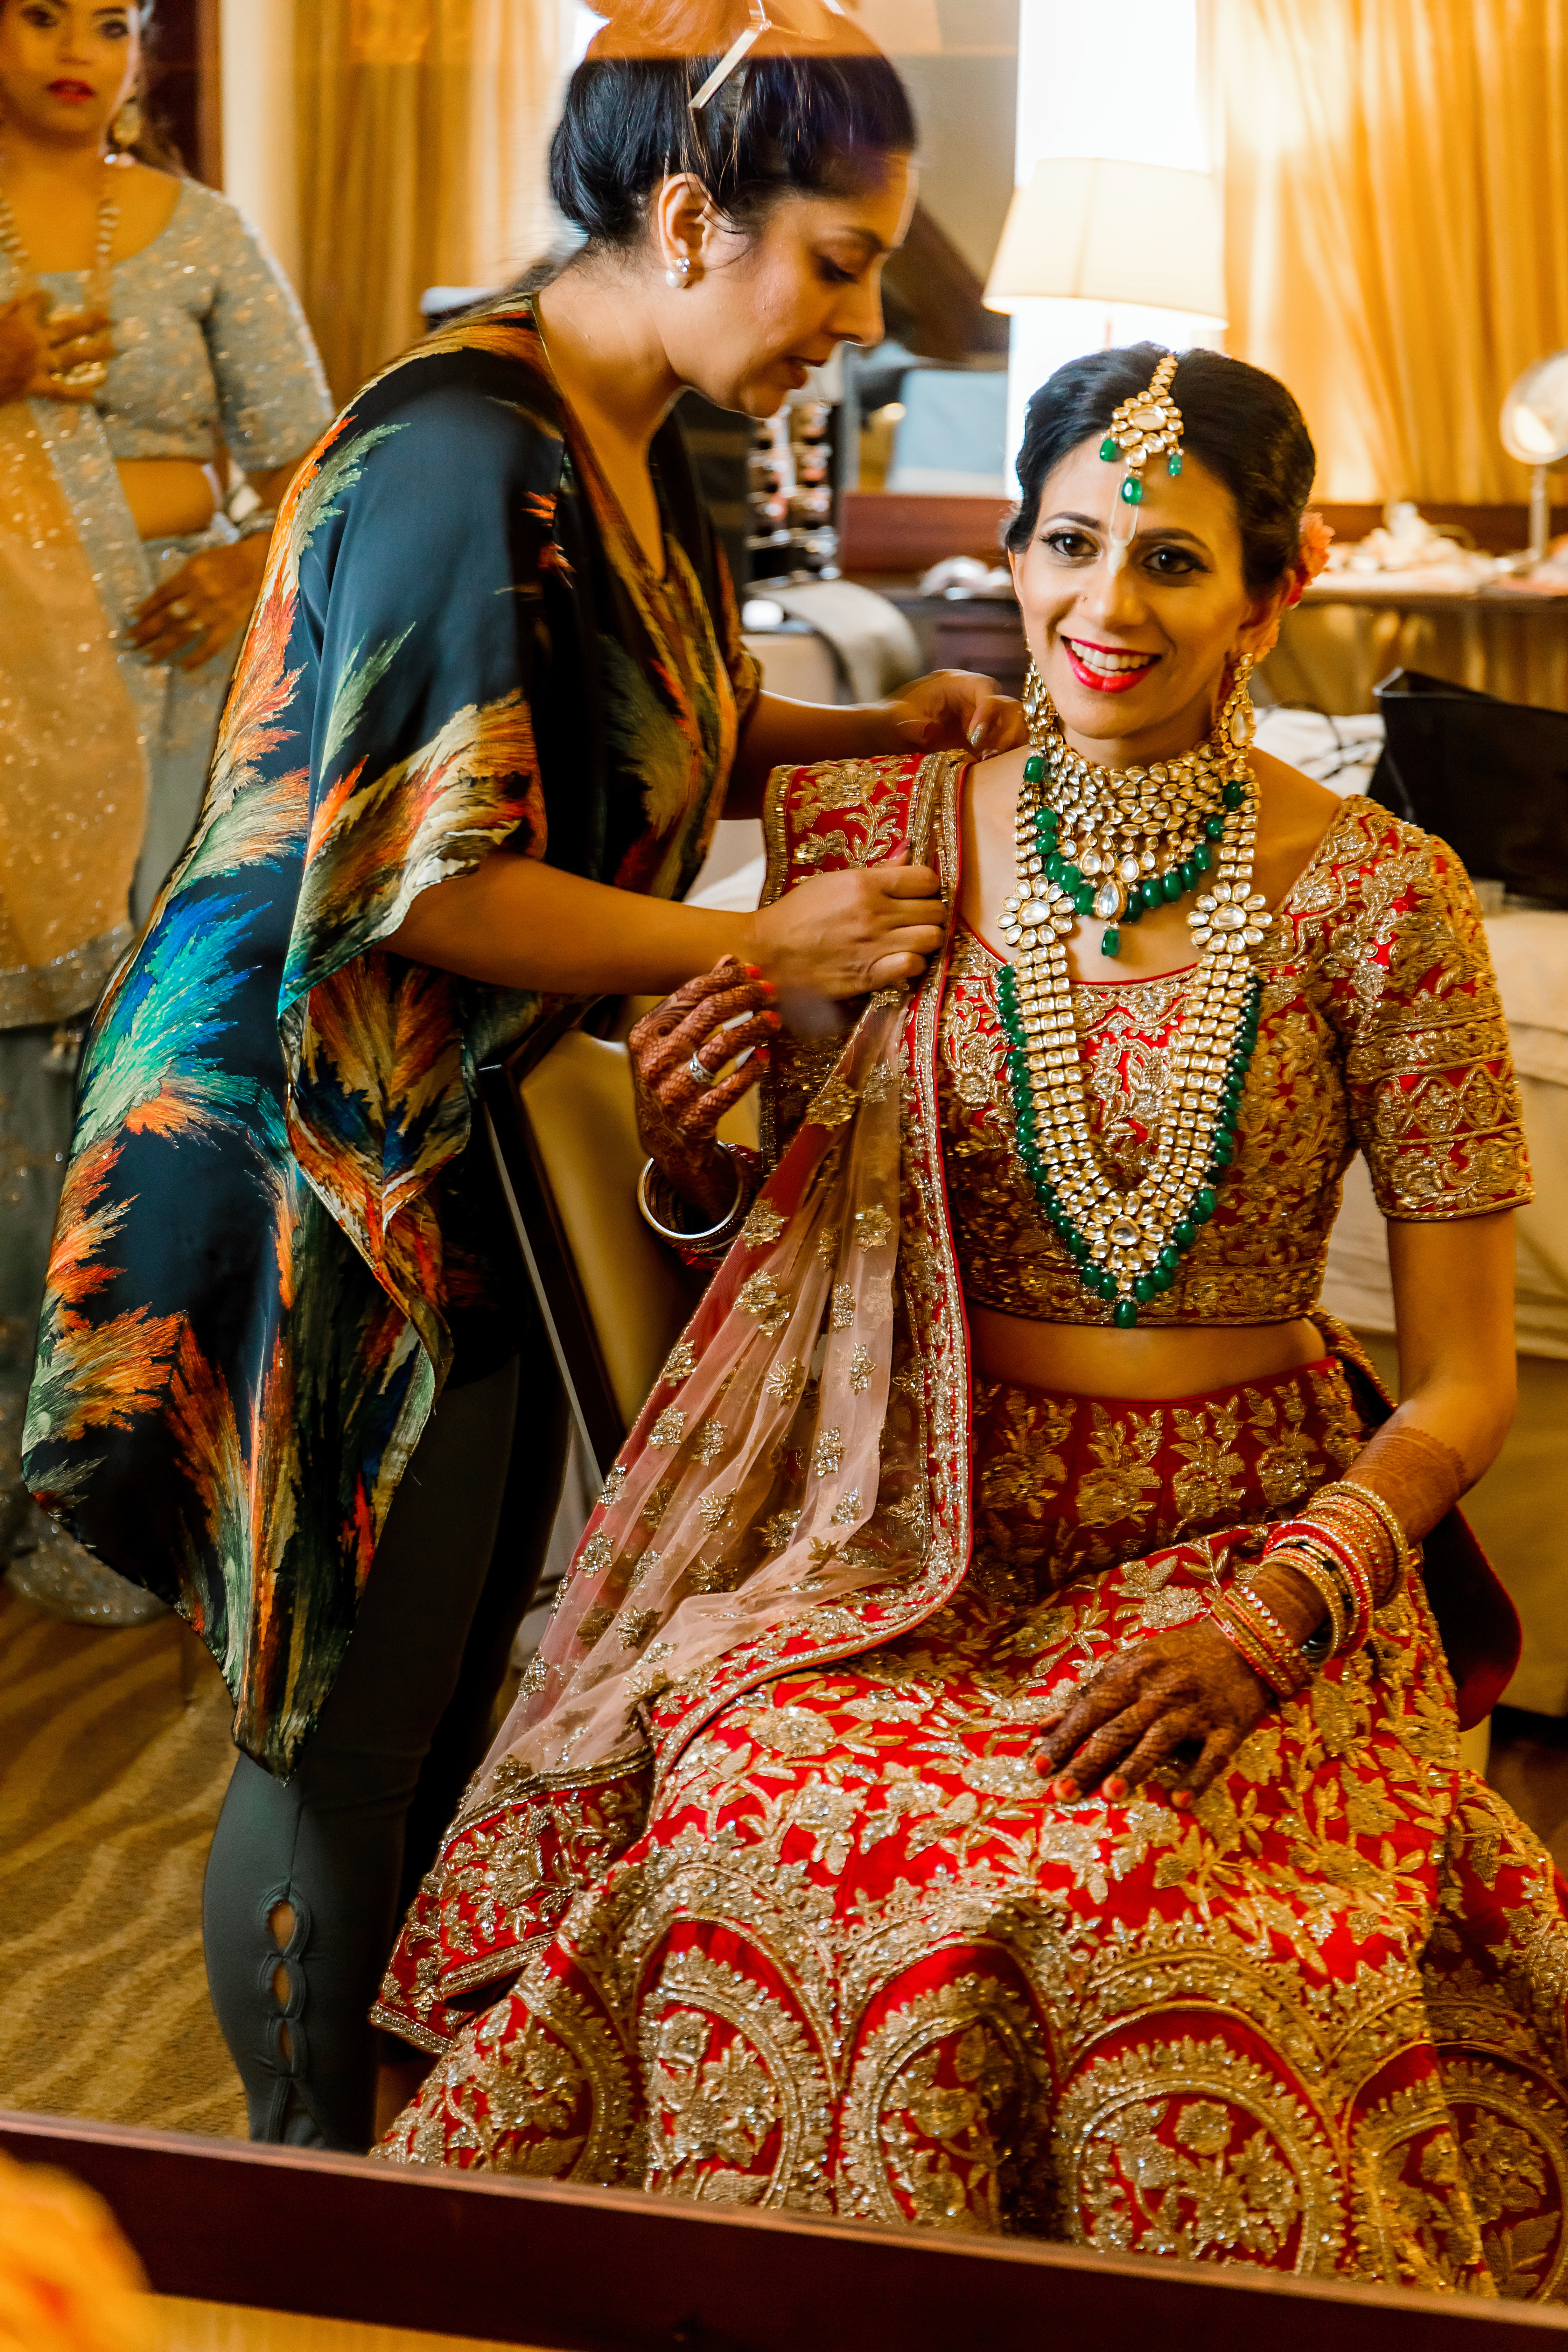 Indian event photographer in orlando